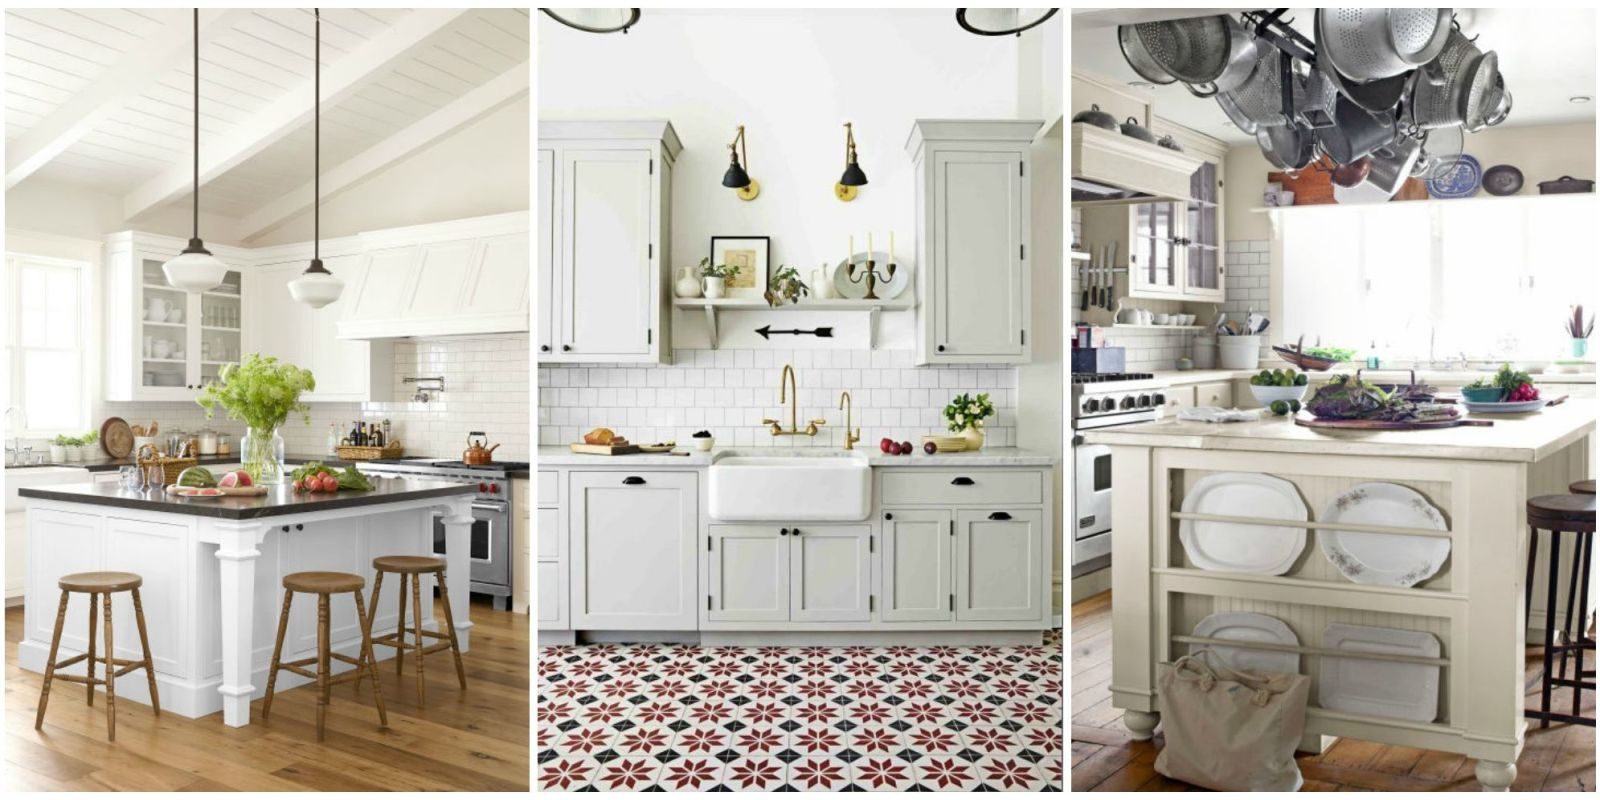 10 best white kitchen cabinet paint colors ideas for for Best kitchen paint colors